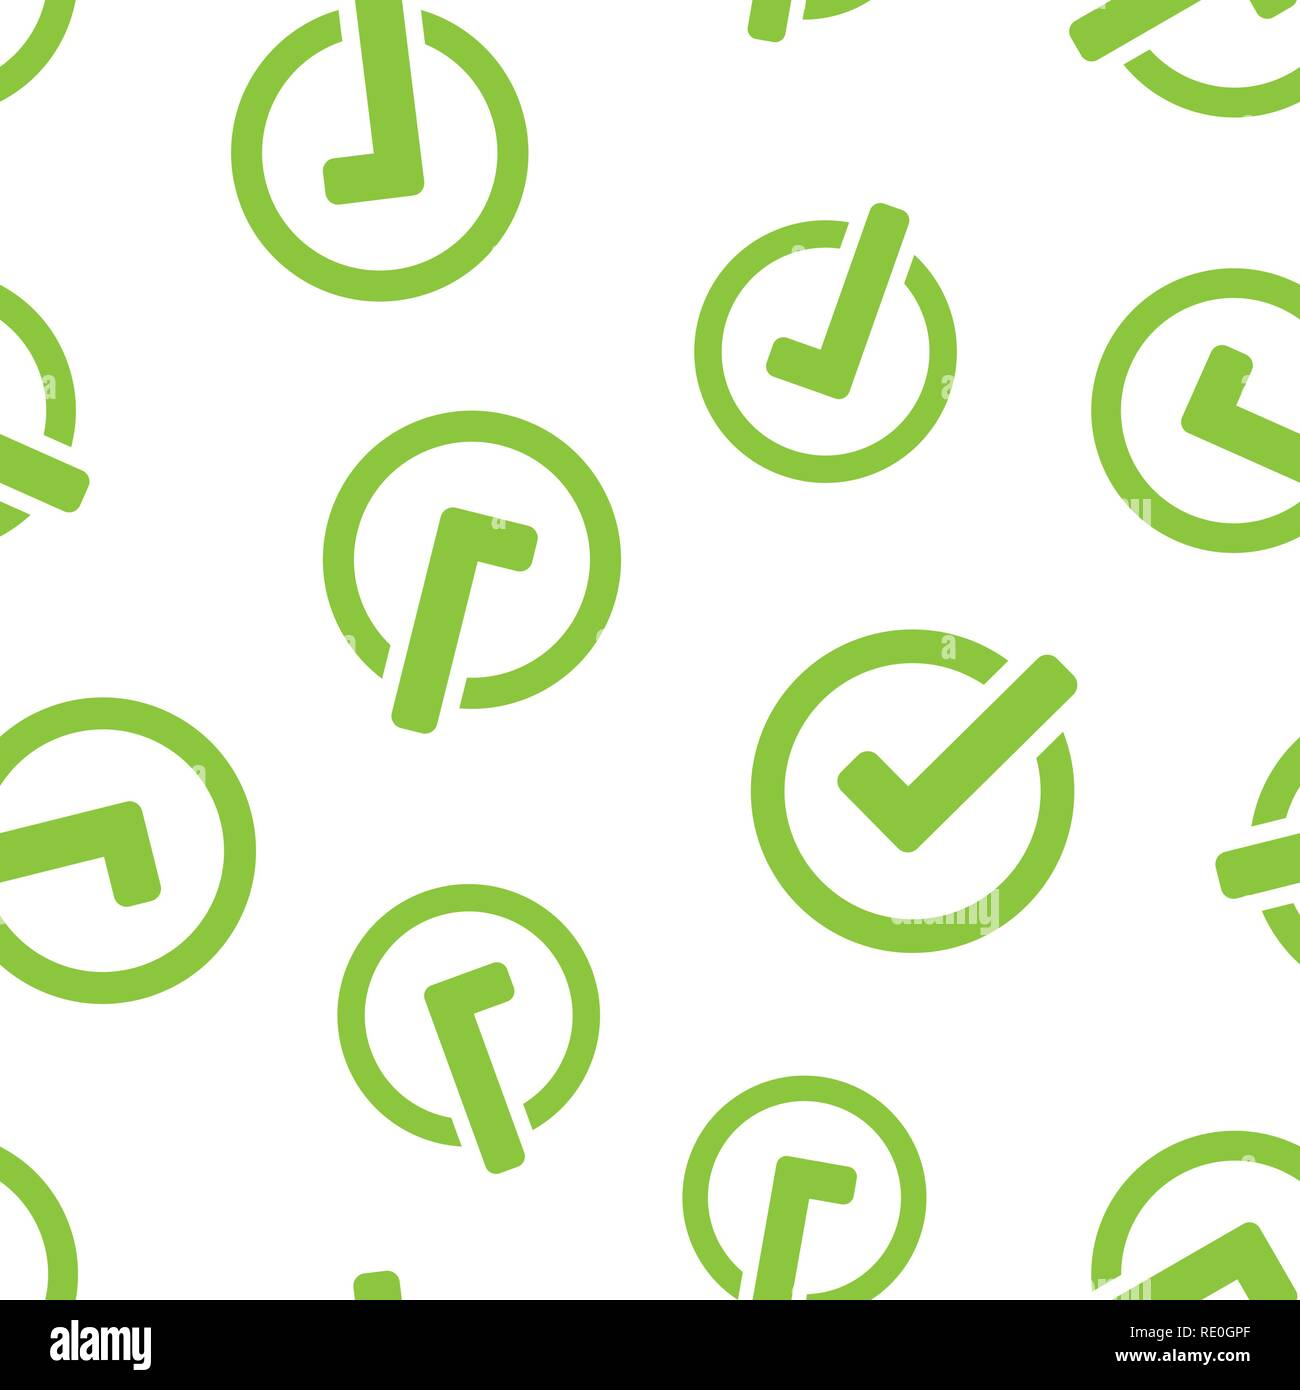 Tick Symbol Stock Photos & Tick Symbol Stock Images - Alamy